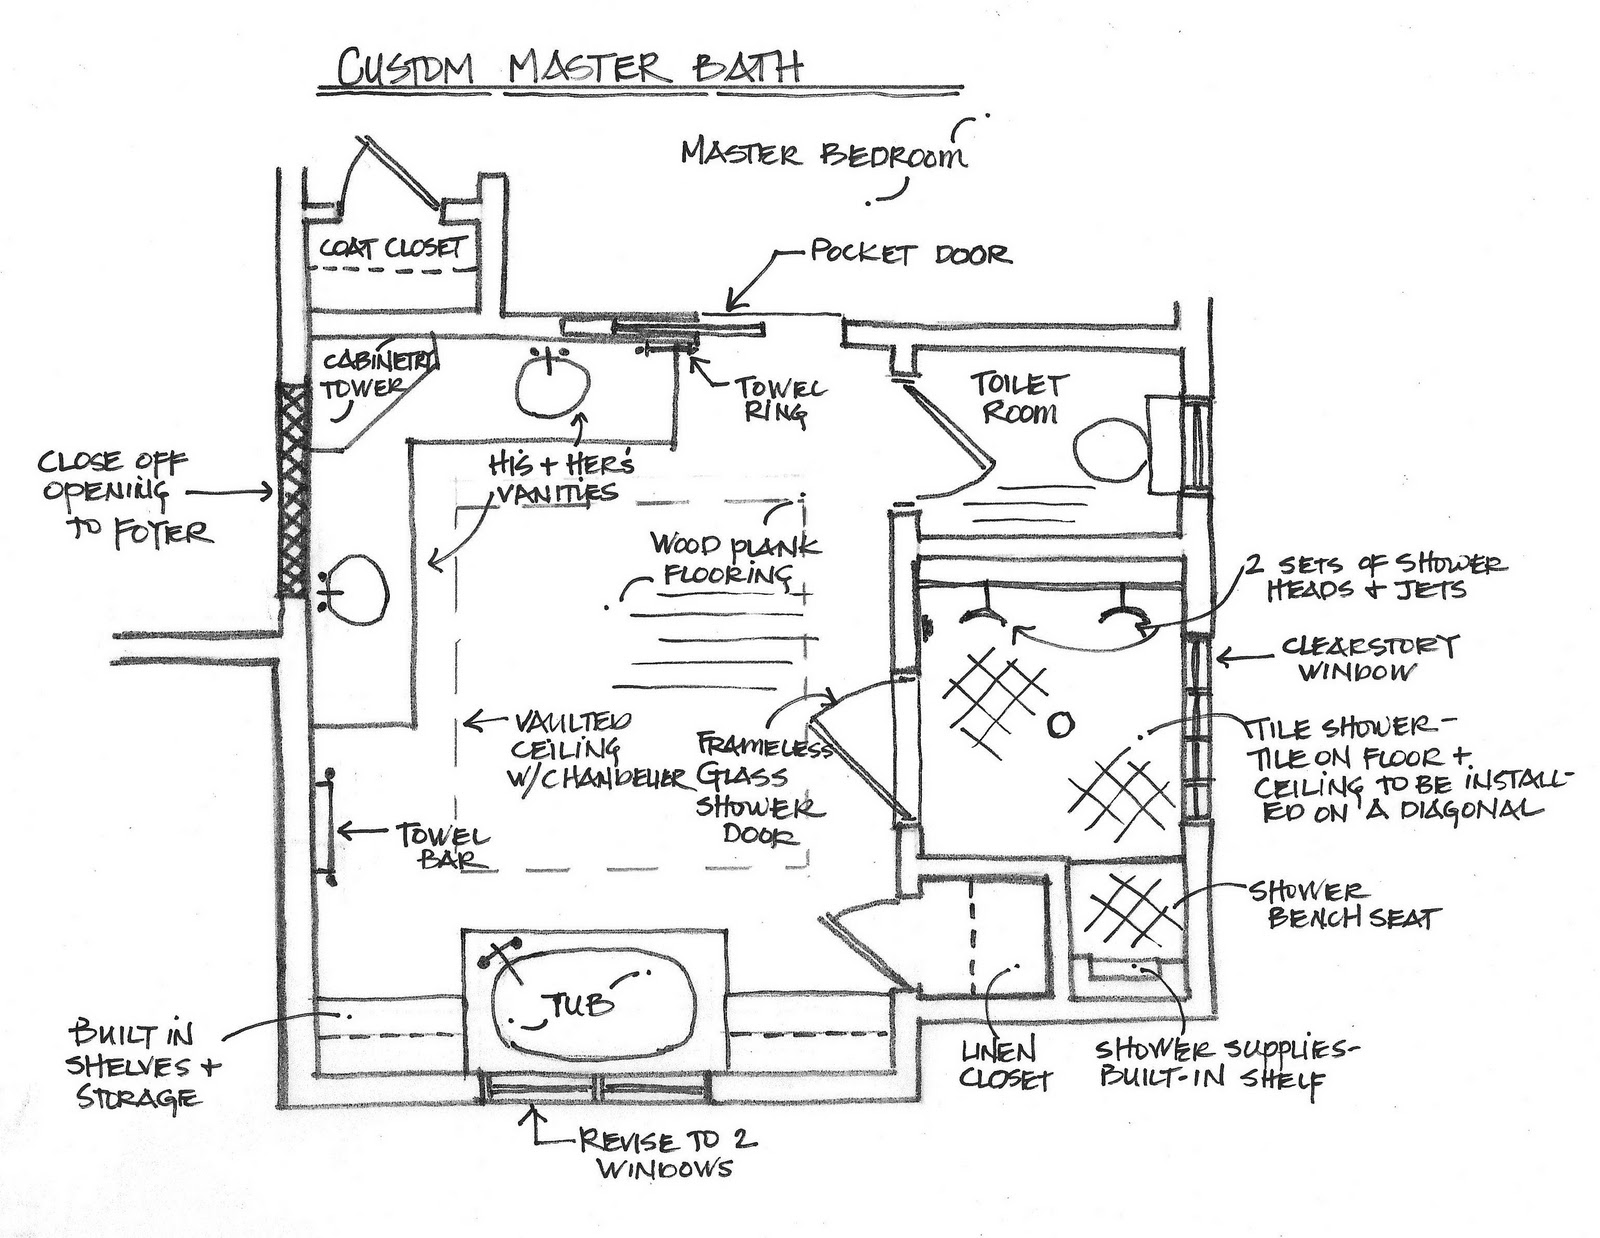 Master bathroom layouts for small spaces home decorating for Master bathroom designs floor plans